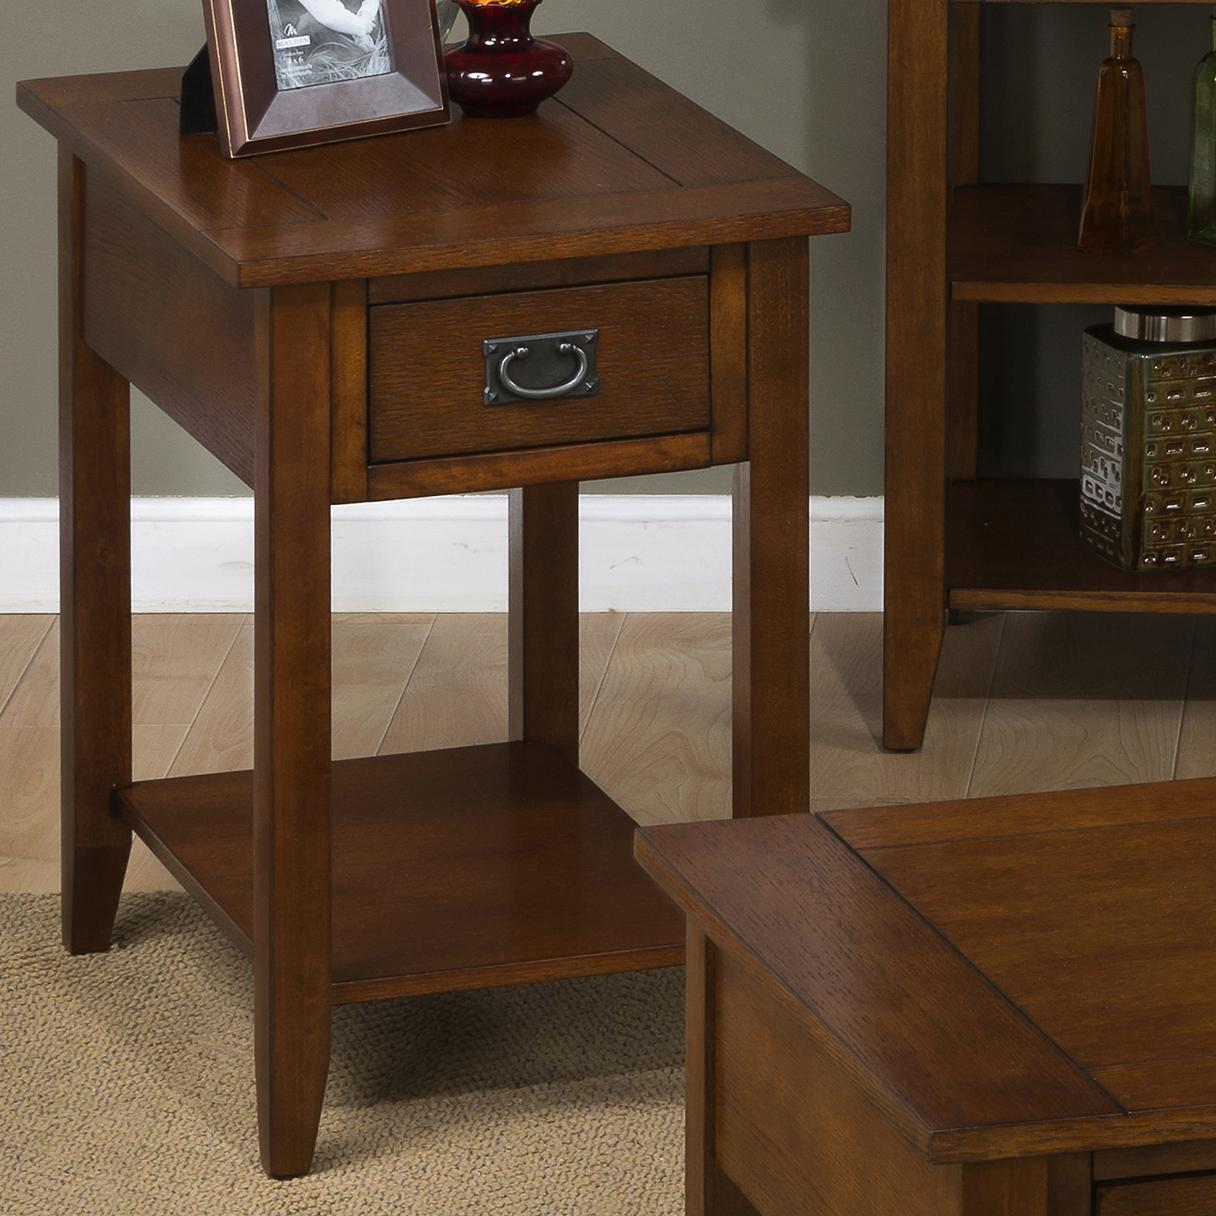 Morris Home Furnishings Kesling Kesling Chairside Table - Item Number: 1032-7